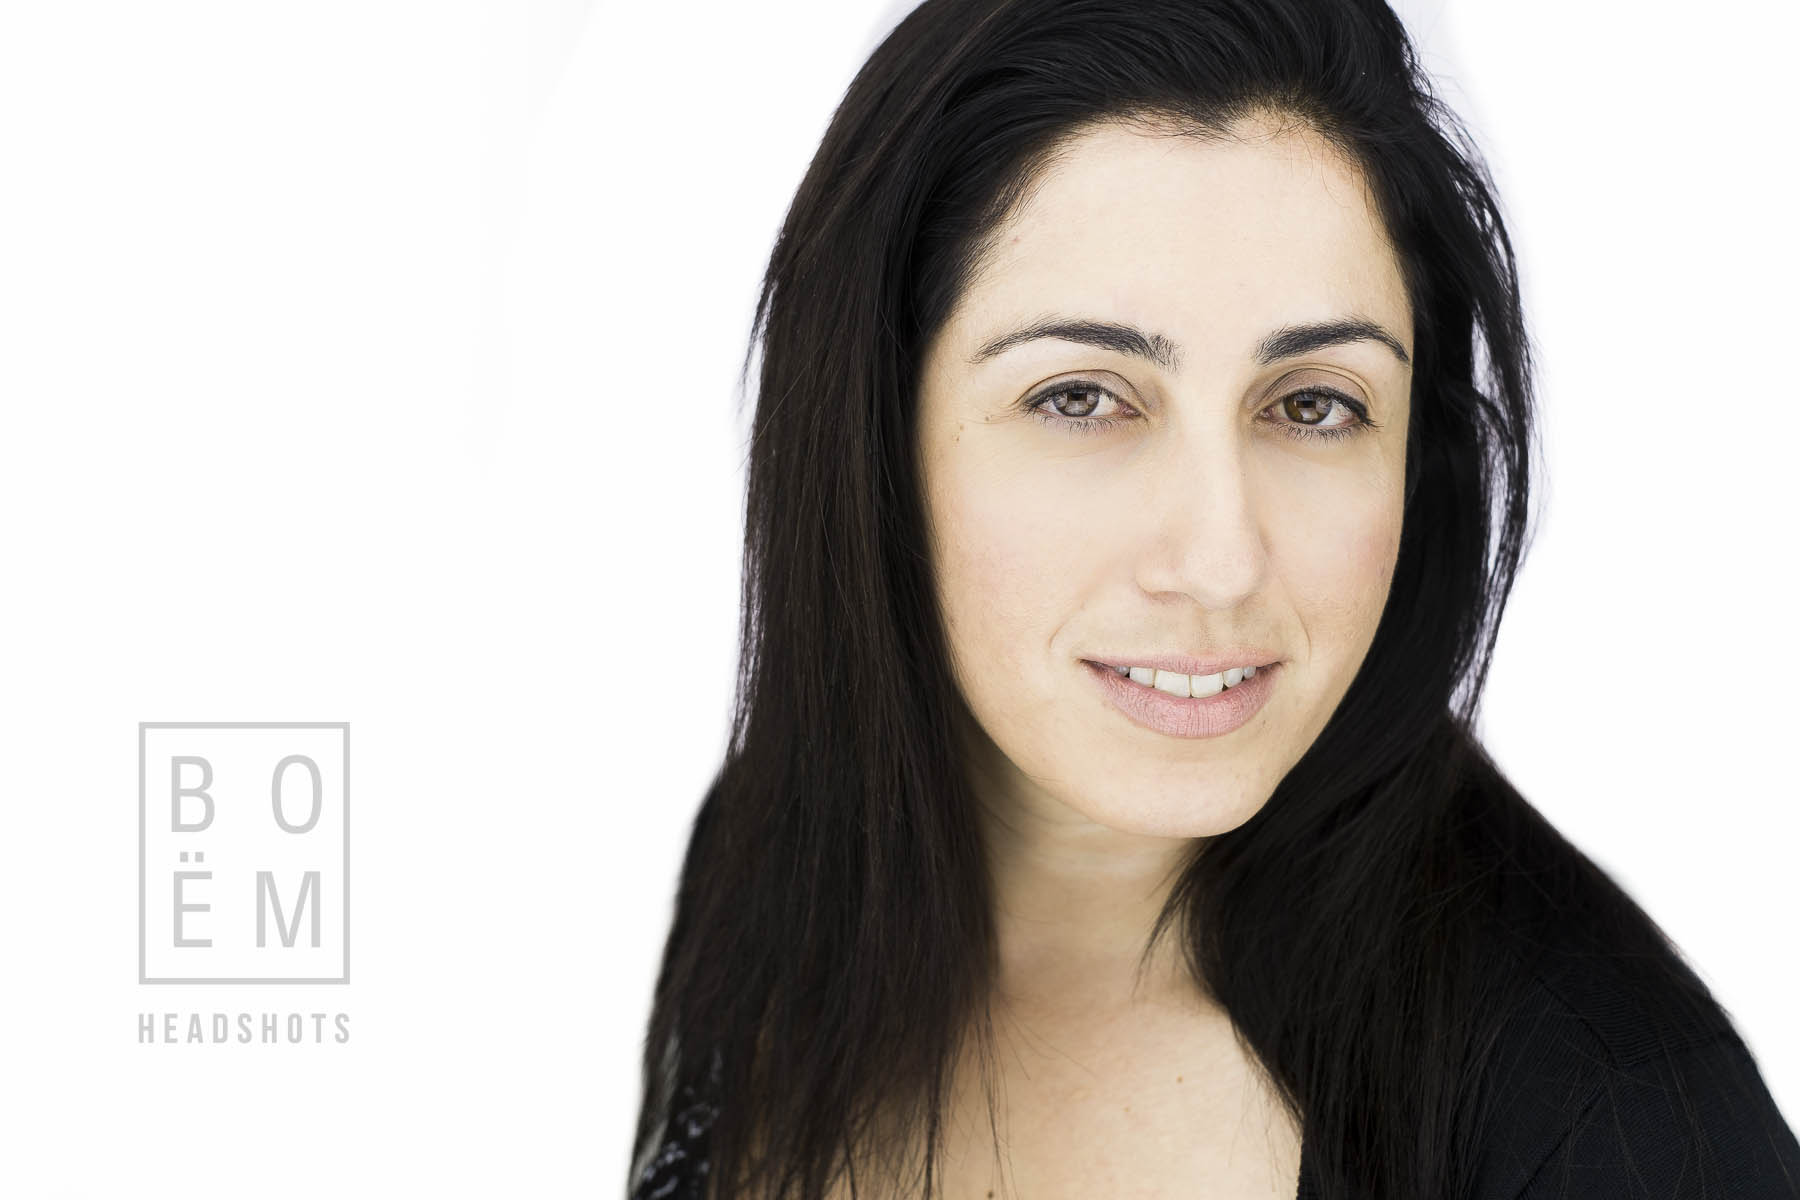 A Professional headshot session for Melissa, an Adelaide based actress by Andre Goosen for Boem Headshots, The Premier Headshot Photographer